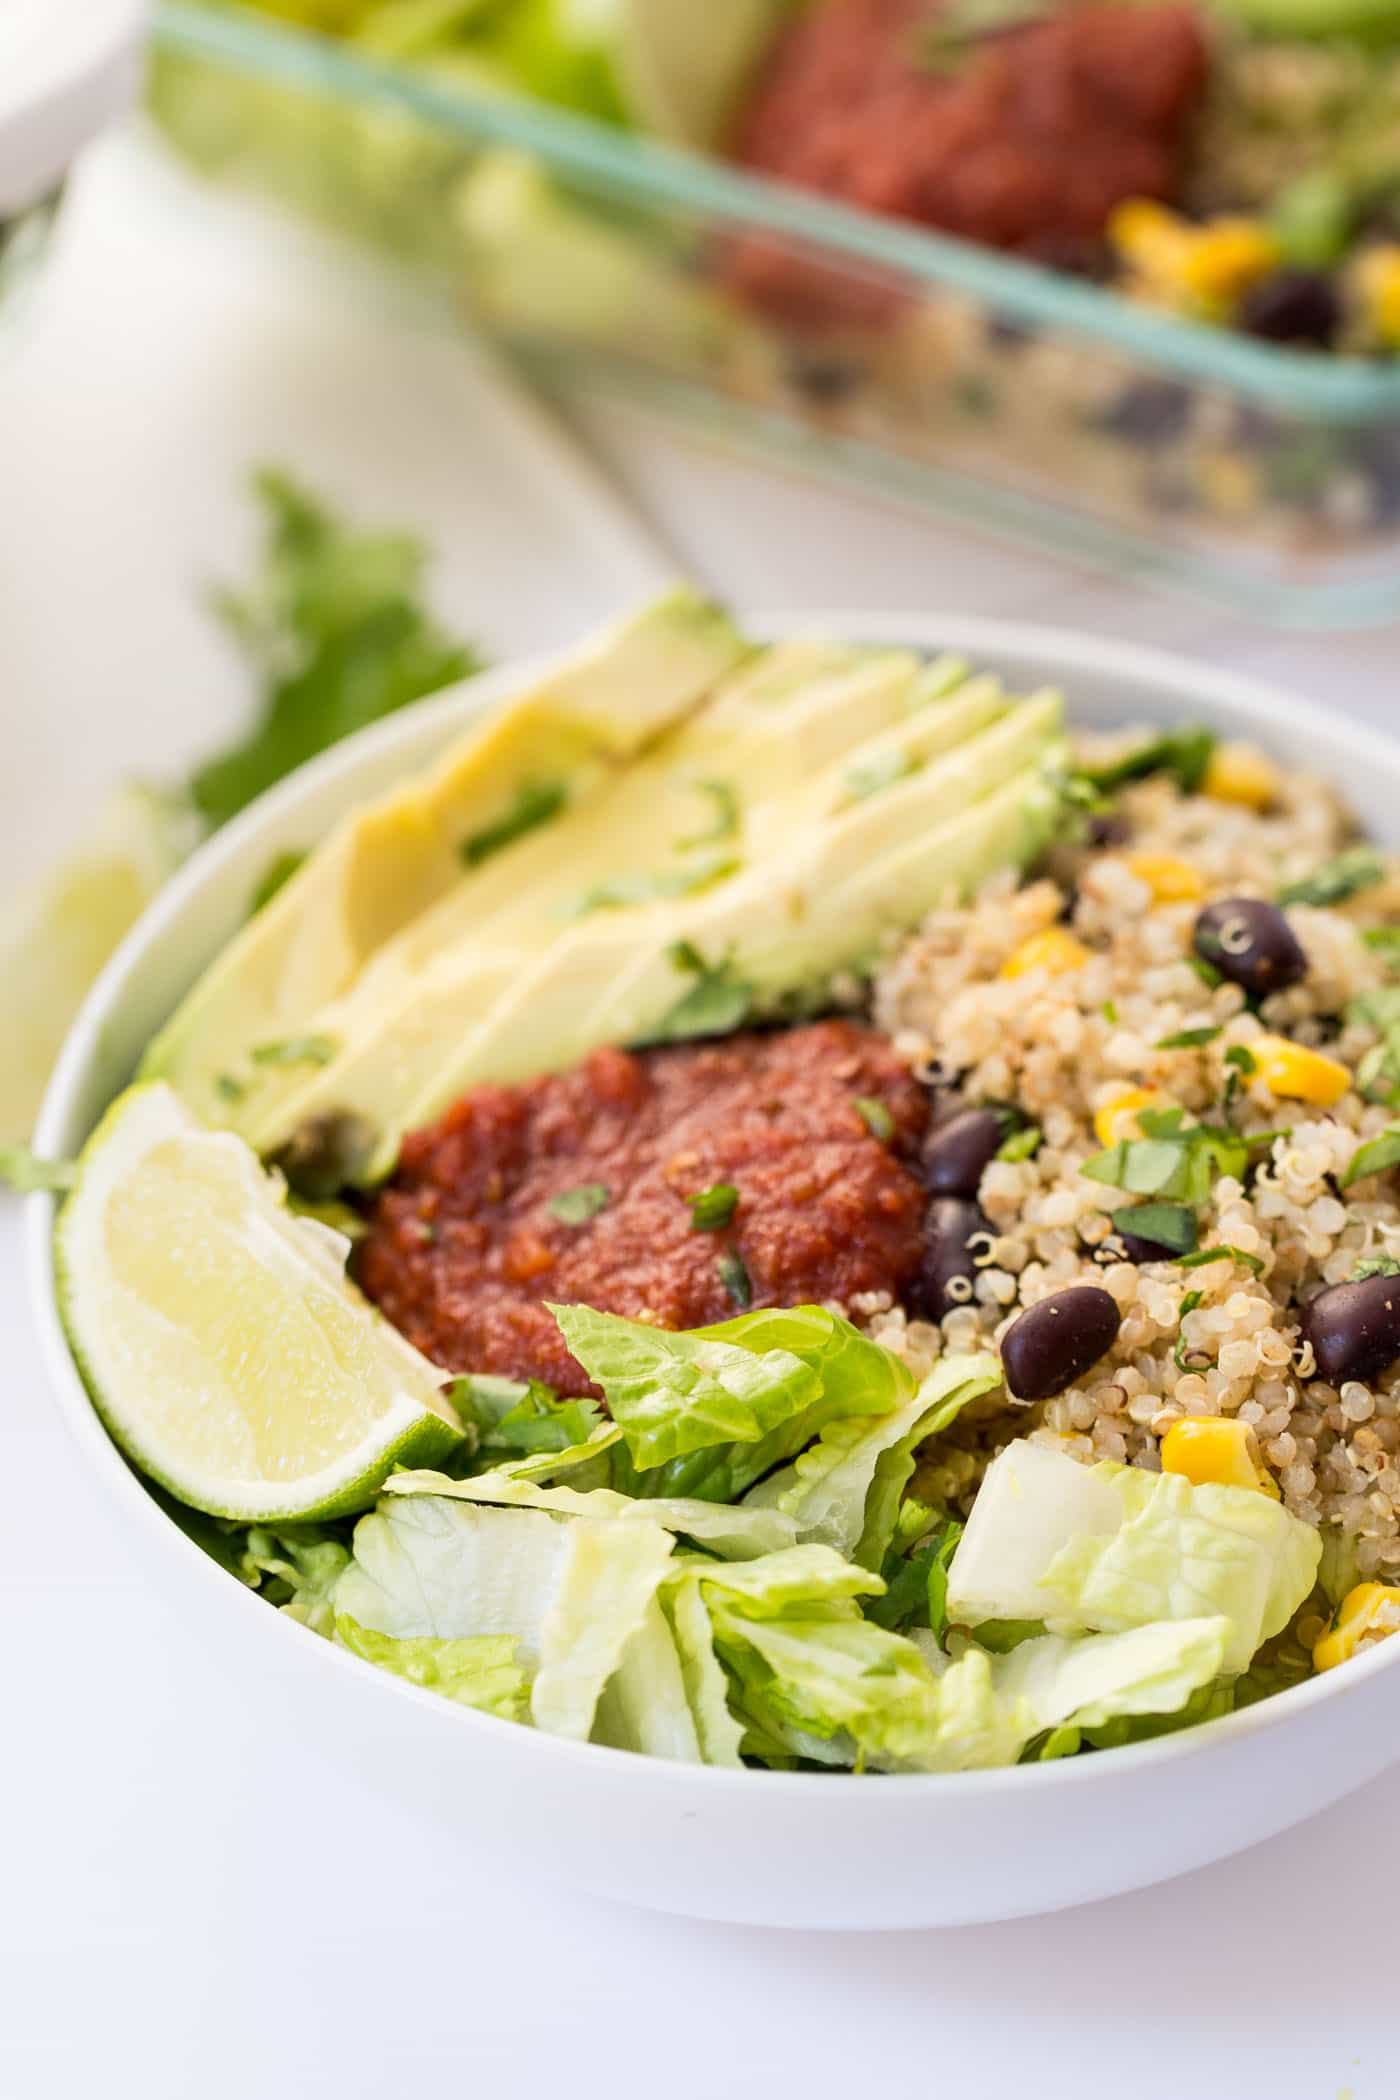 These easy vegetarian quinoa burrito bowls are the perfect recipe to meal prep for a healthy lunch or dinner. It makes 5 days worth of food in less than 20 minutes, is packed with nutrients and tastes delicious!